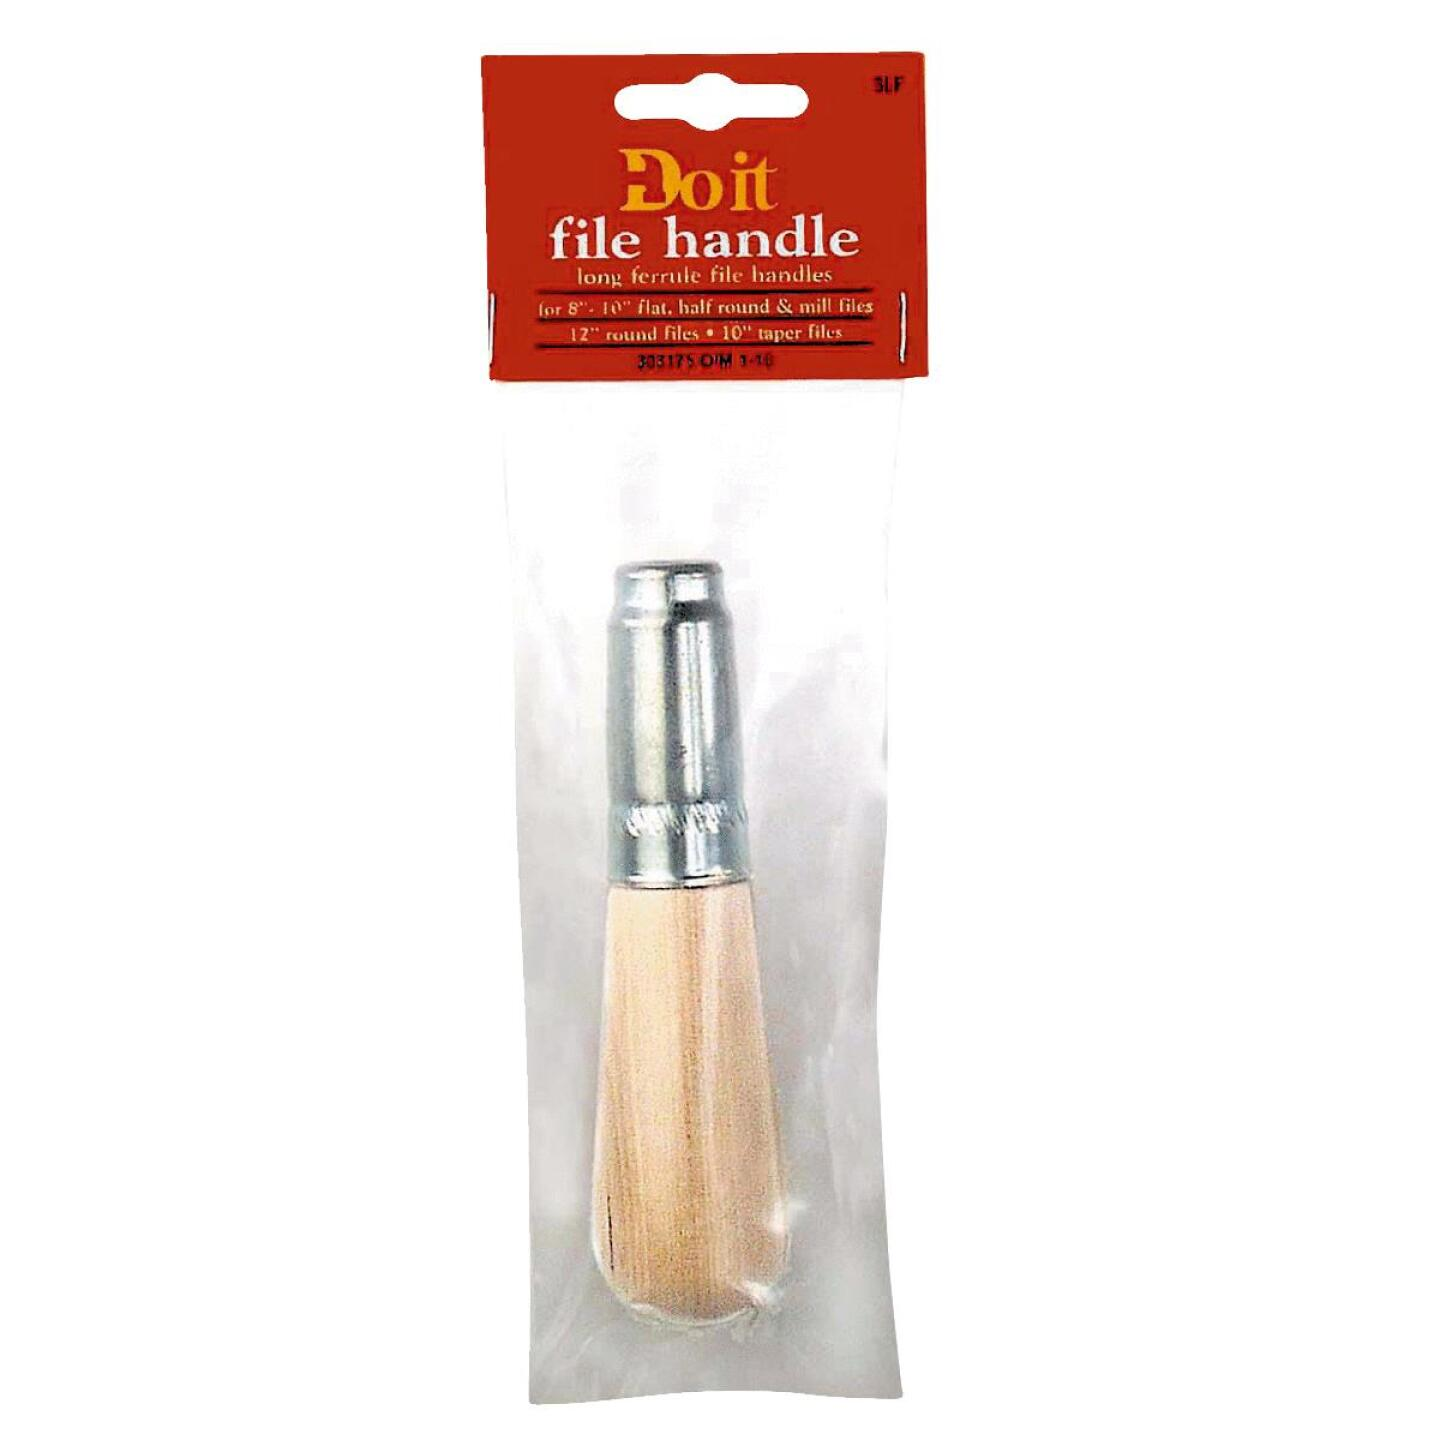 Do it Long Ferrule 5 In. L Wood File Handle for 8 to 12 In. File Image 1